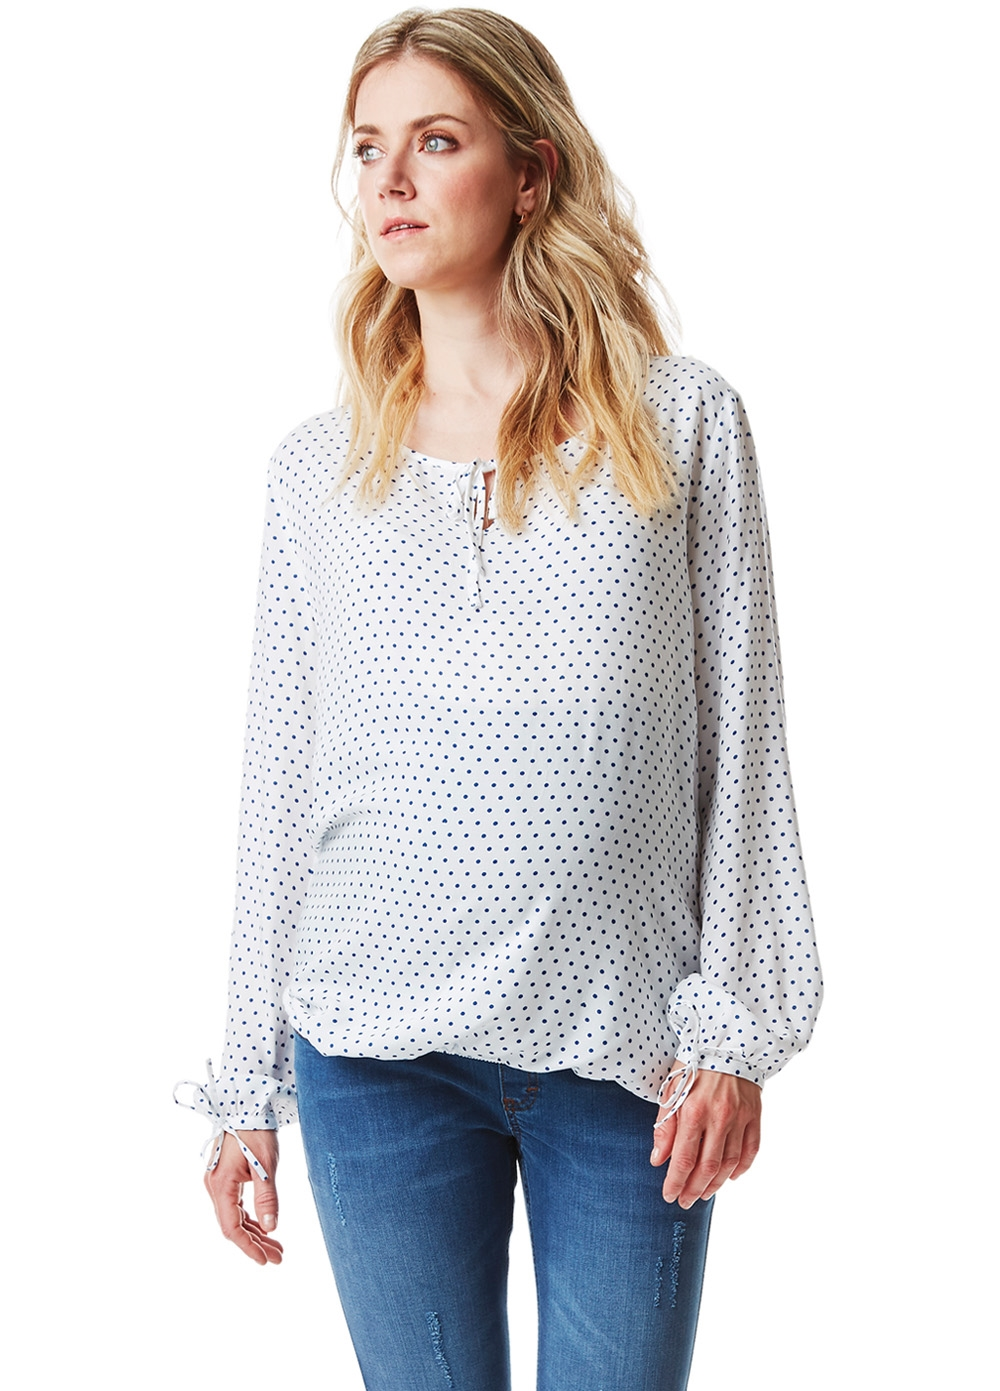 ESPRIT at QUEEN BEE online $85.95 - If you're looking for something more corporate, QUEEN BEE has you covered. They stock a range of different brands, and will express ship across the country. This spotty number is my favourite and screams SPRING!